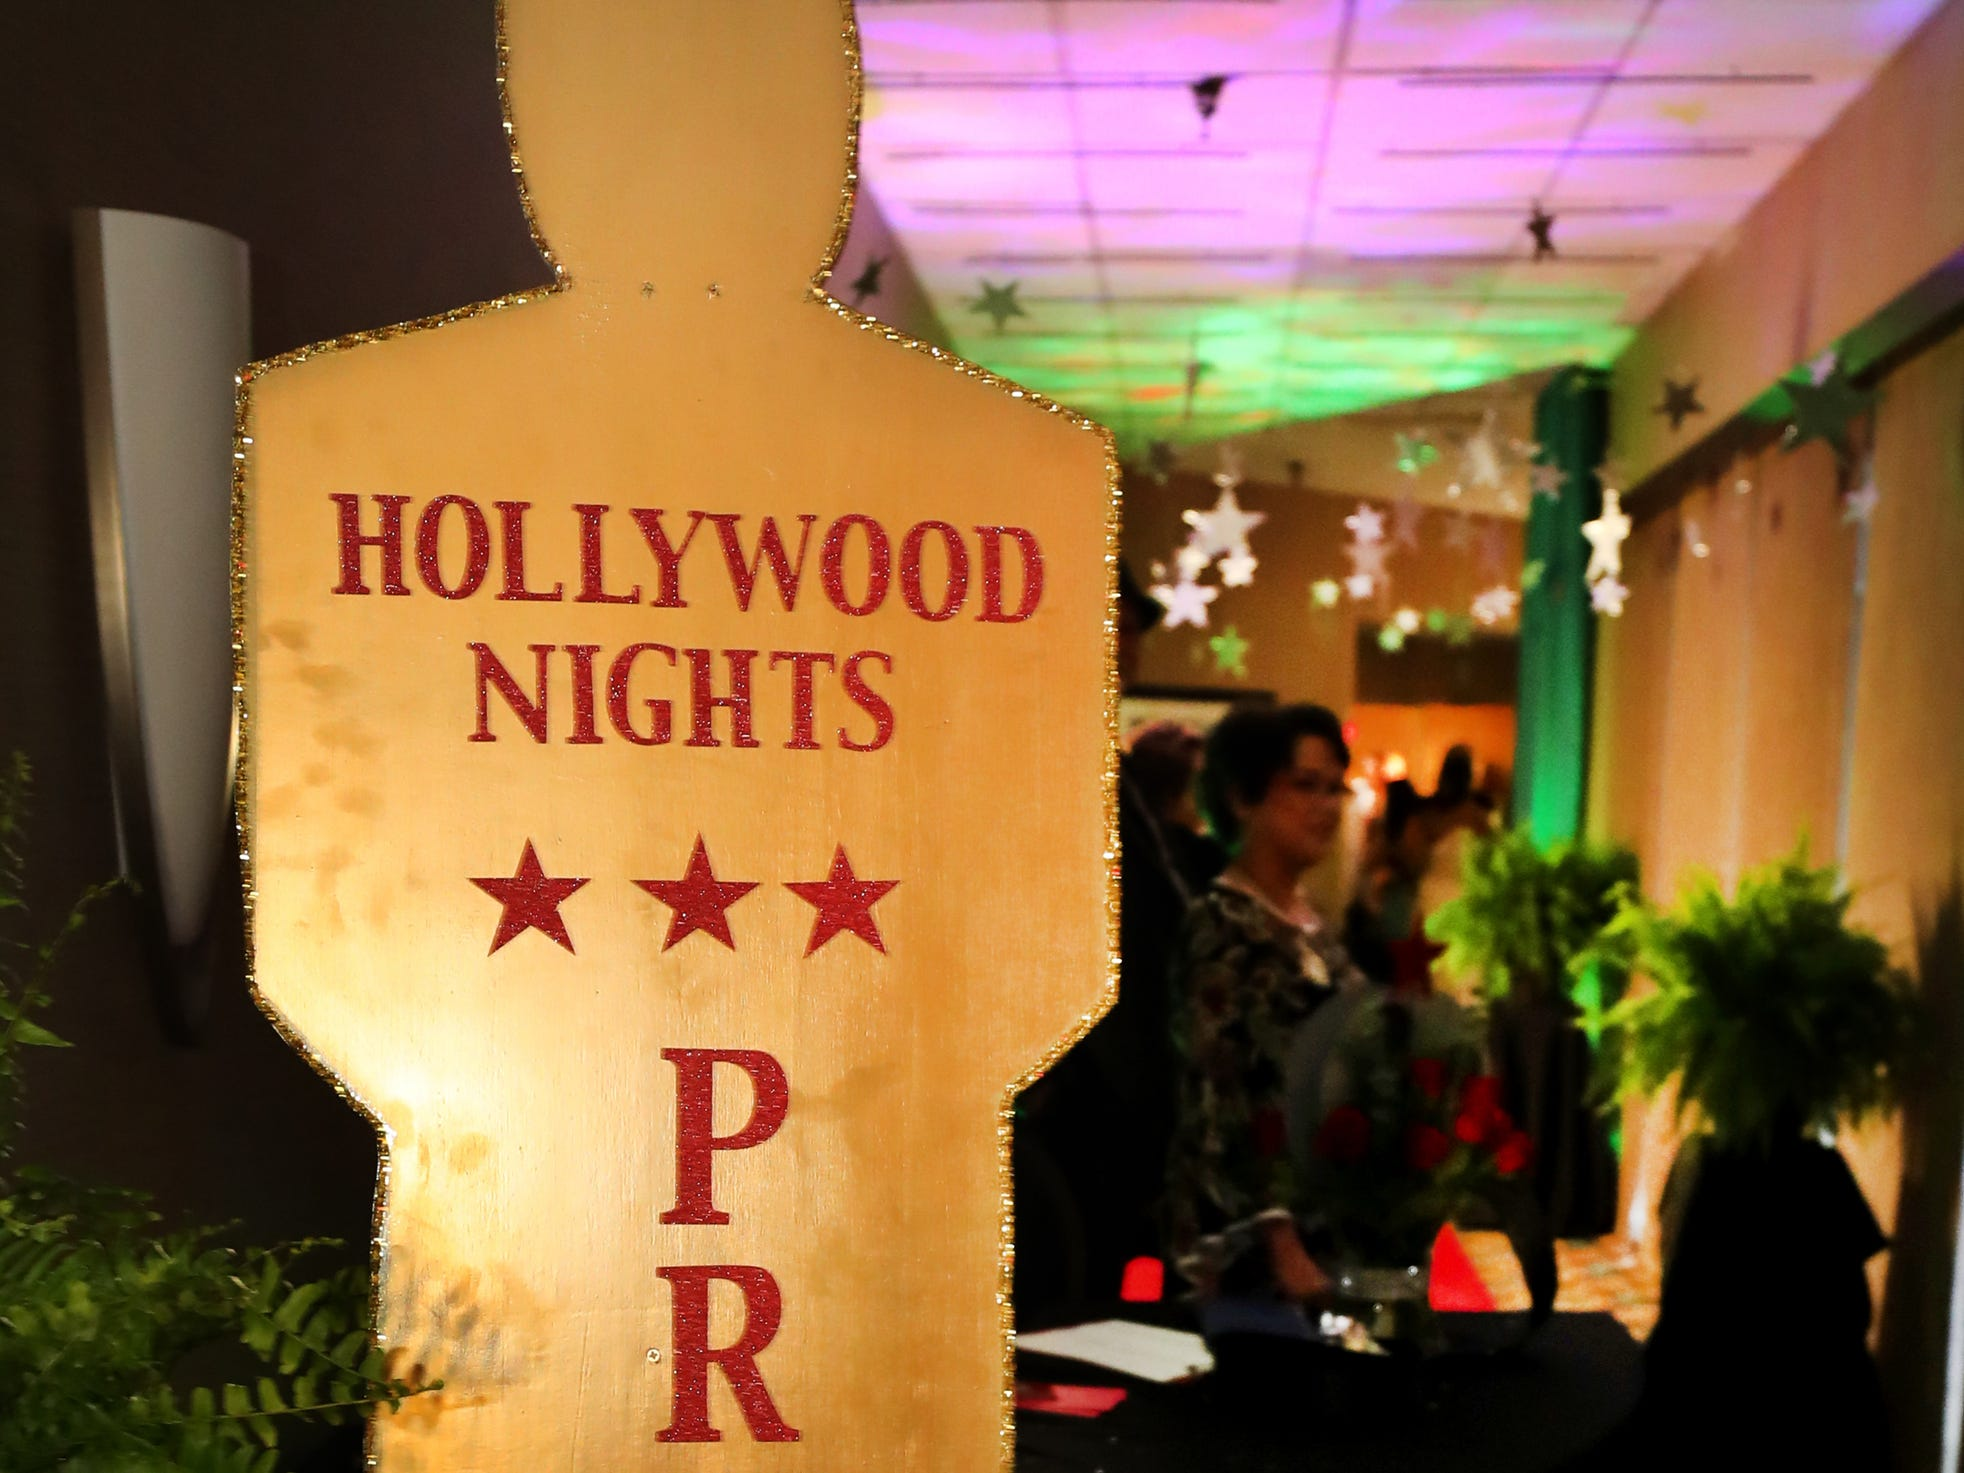 Holloway's Hollywood Nights Prom at the DoubleTree on Thursday April 18, 2019.